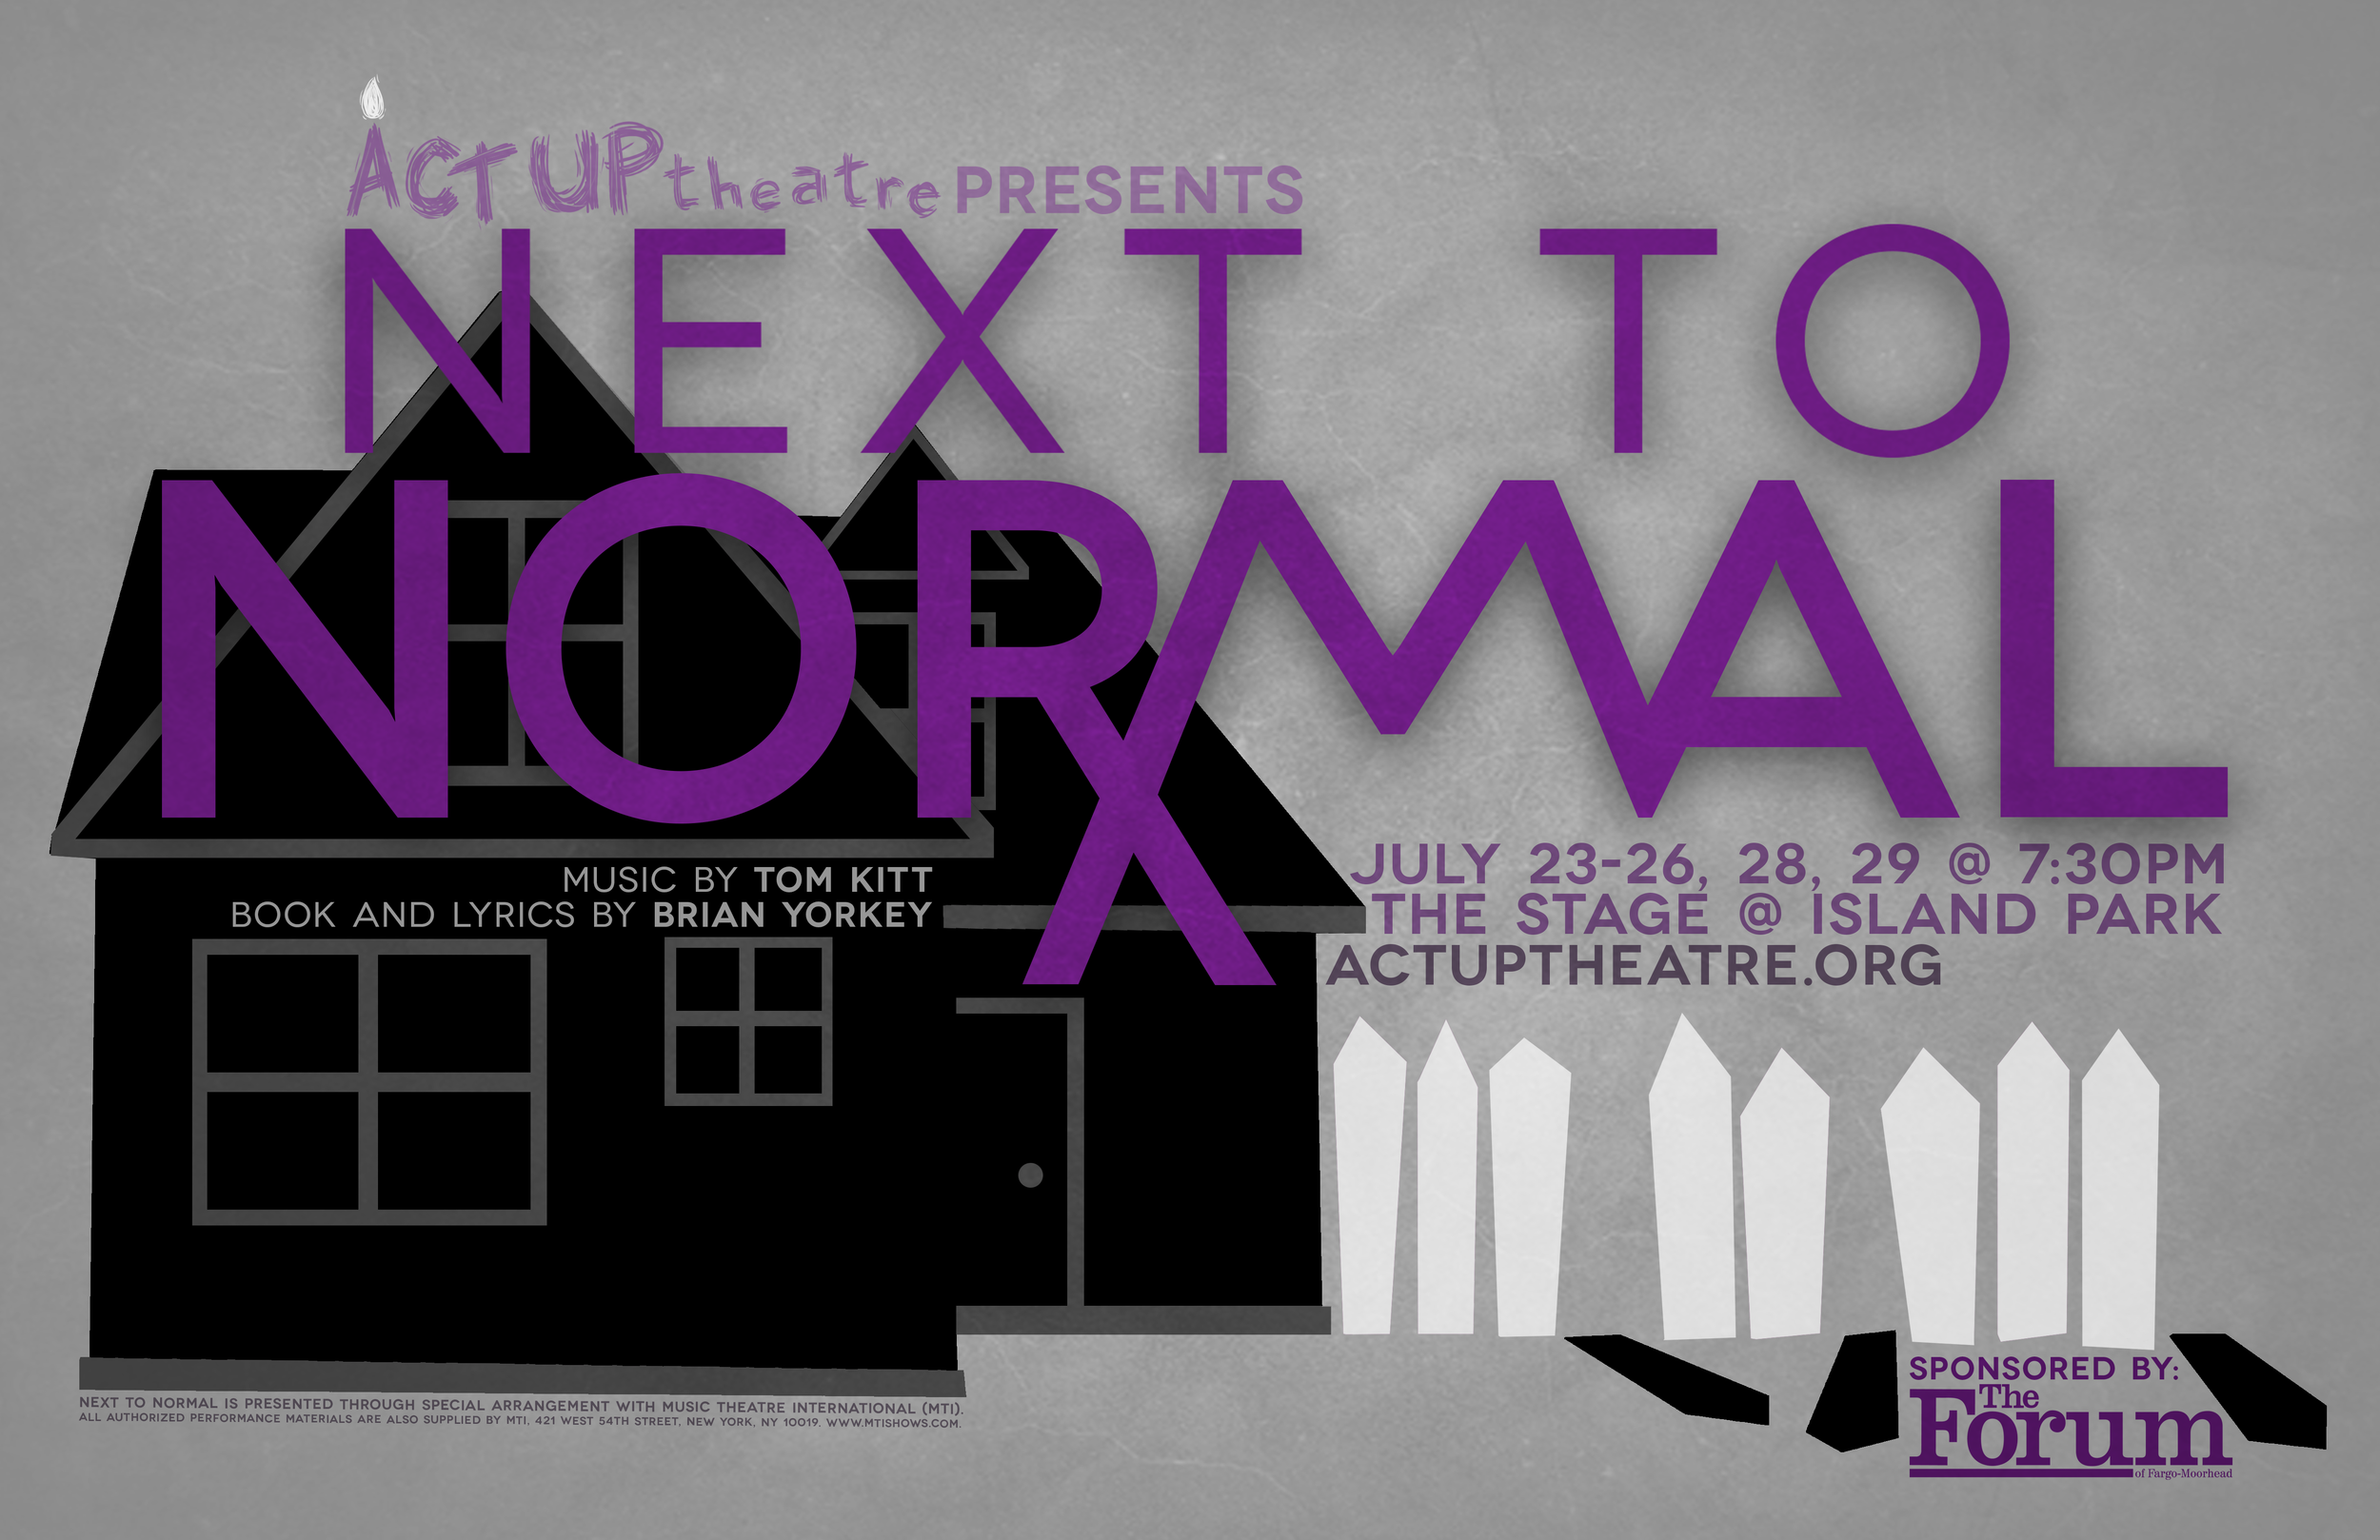 Poster design 2014 - Poster Designed For Act Up Theatre S 2014 Production Of Next To Normal